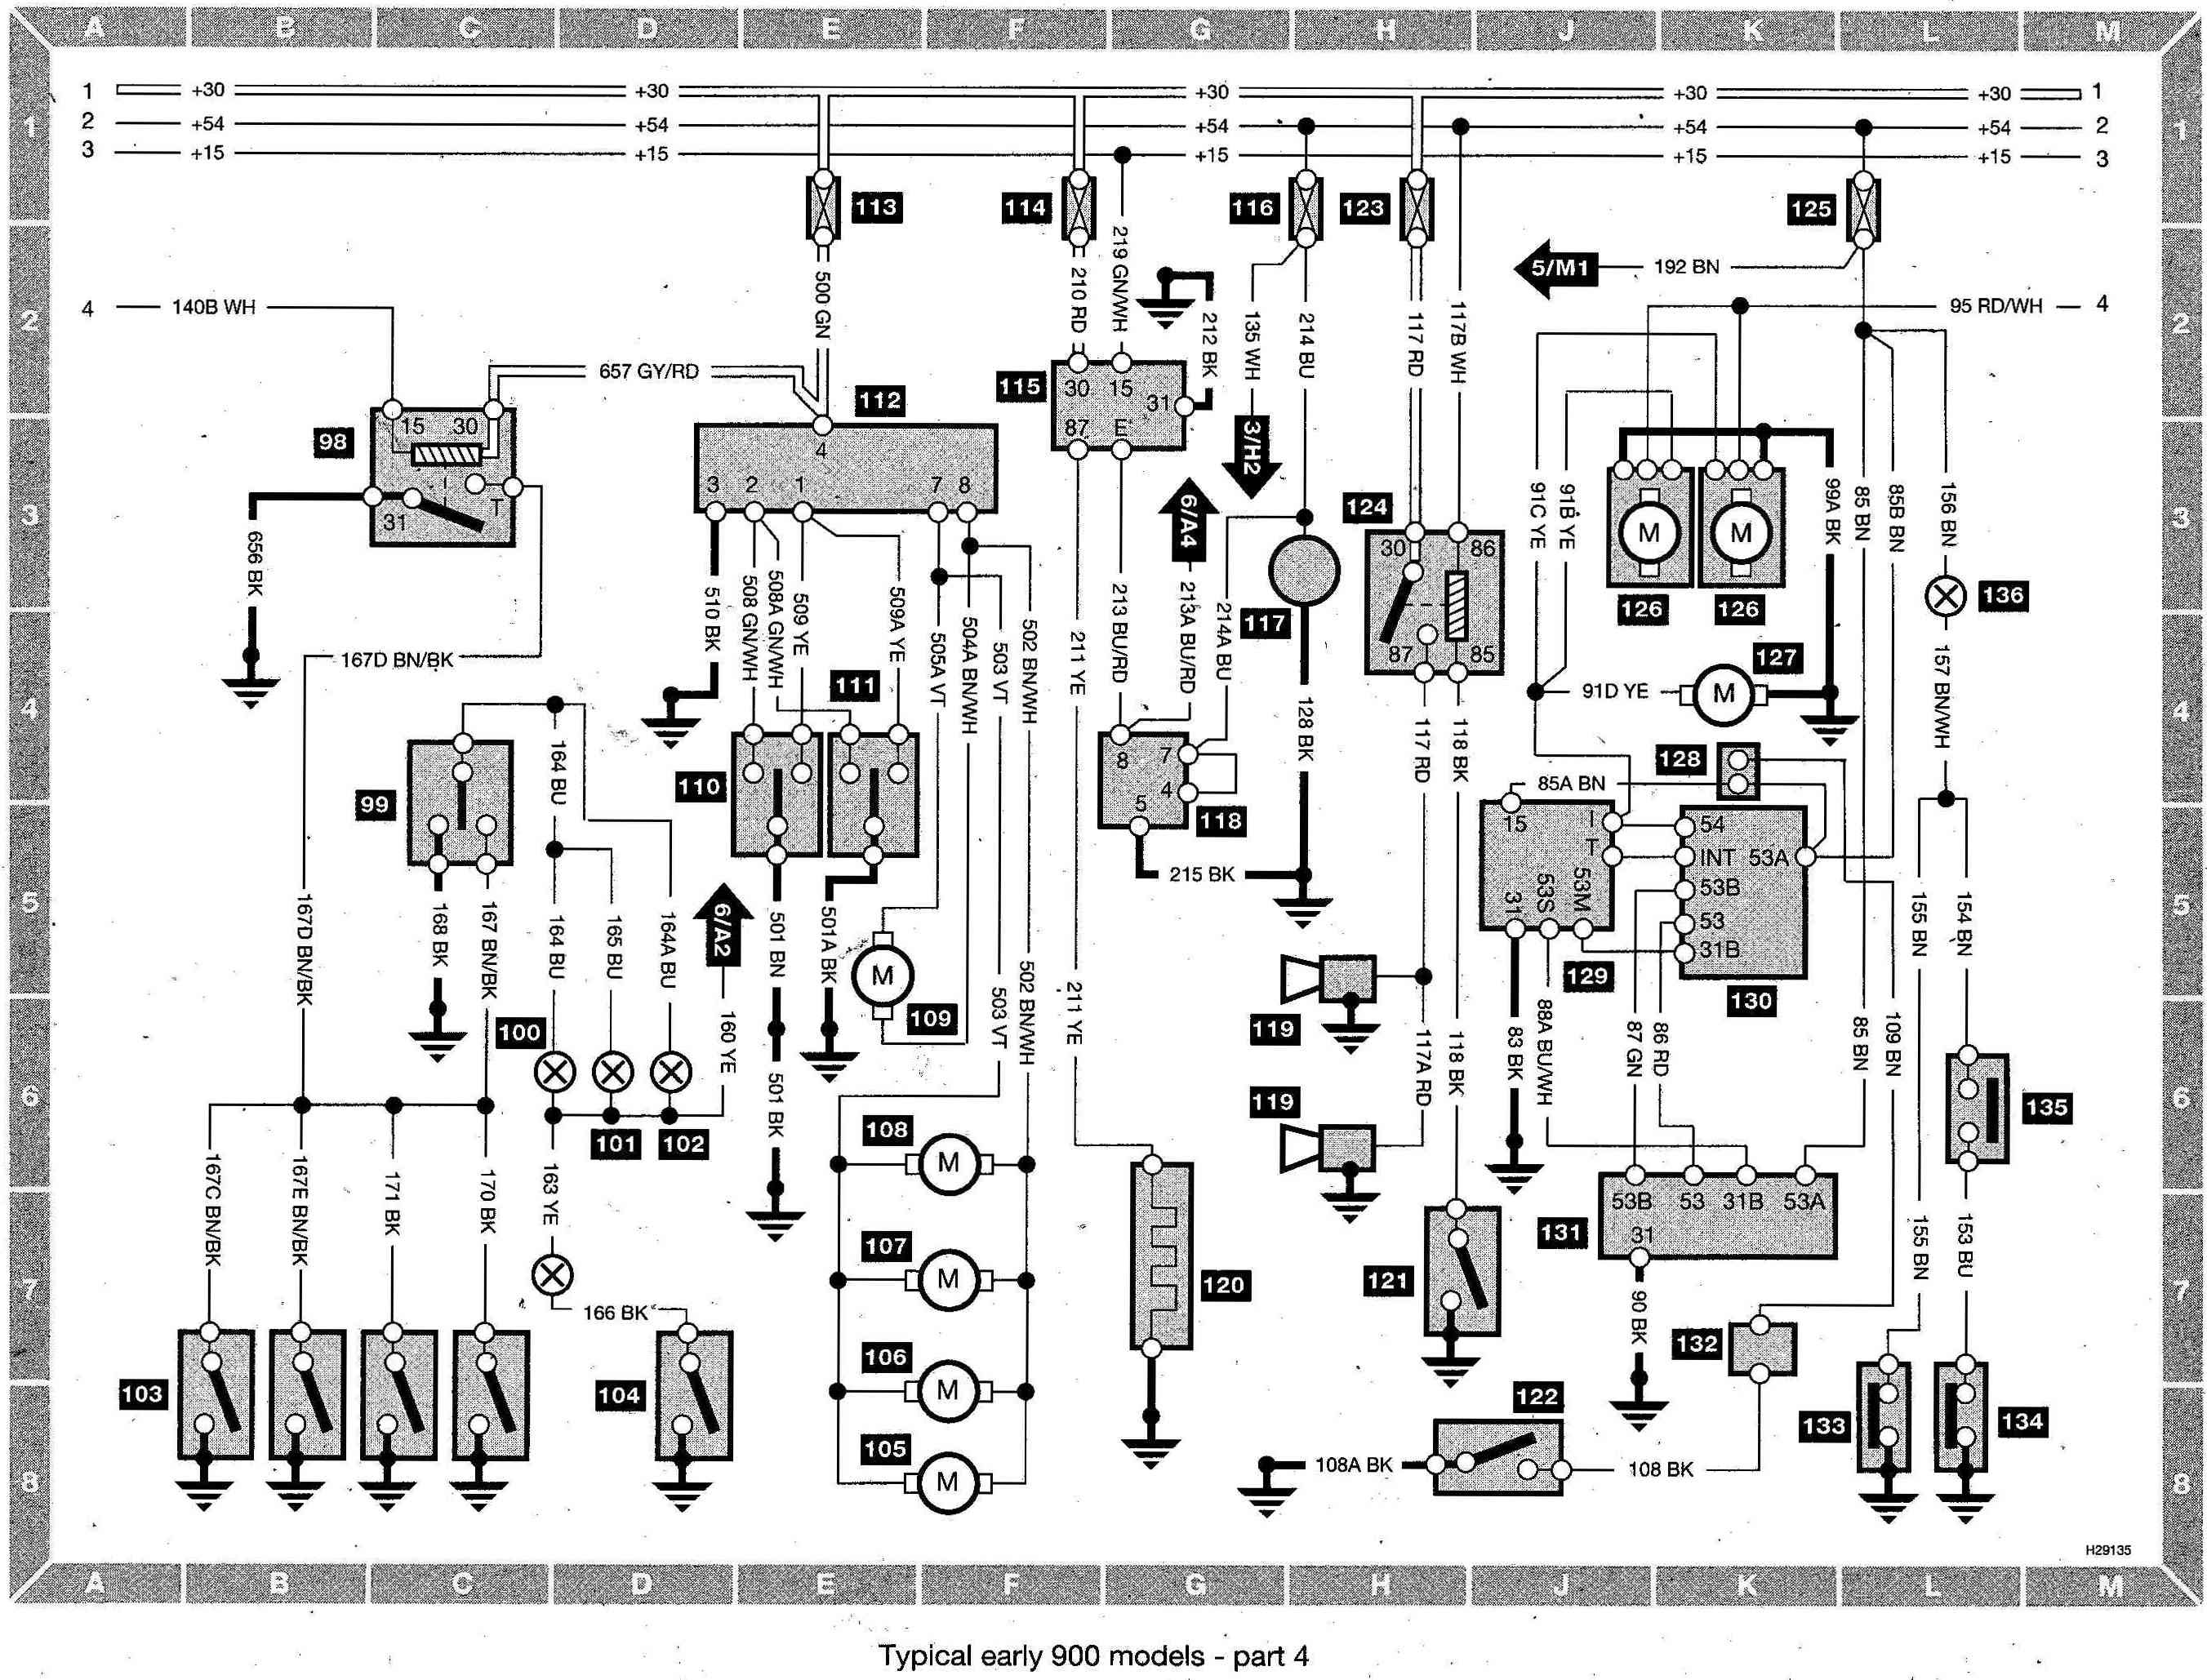 2004 Scion Xb Fuse Box Diagram